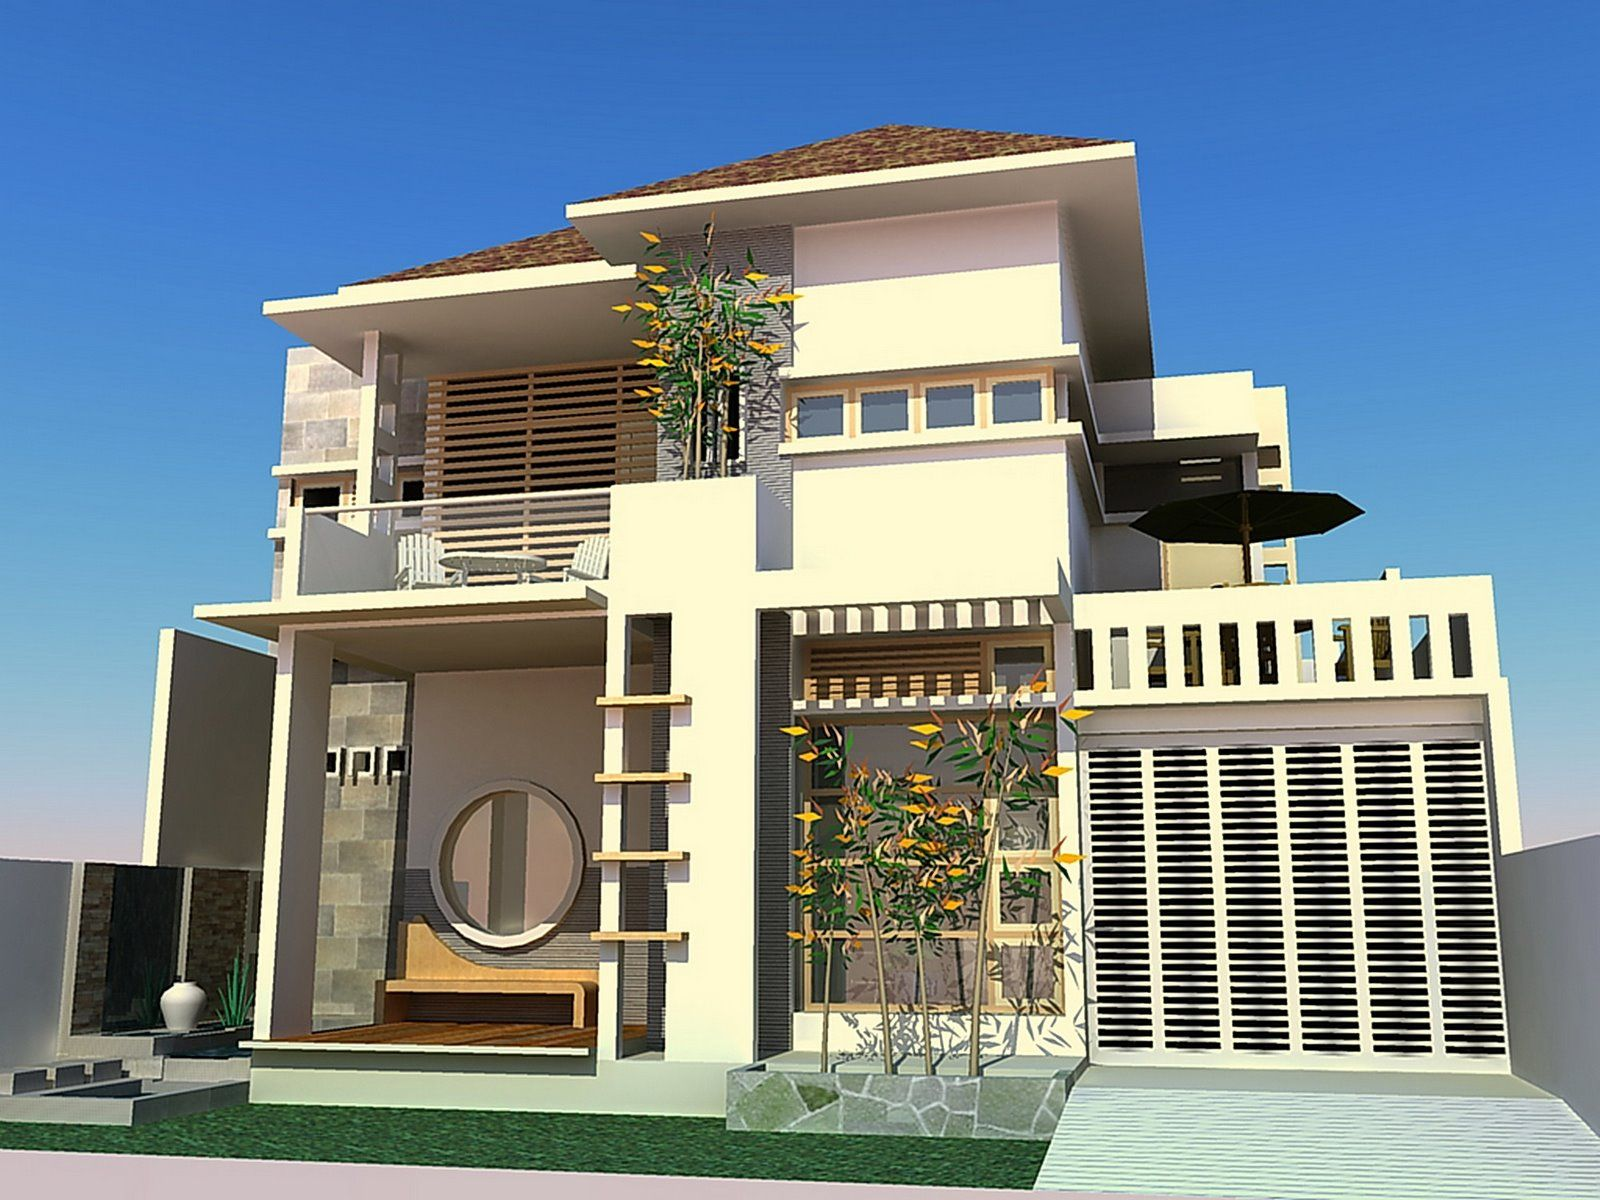 best images about home design ideas on pinterest house design home design ideas homes designs - Exterior Home Design Ideas